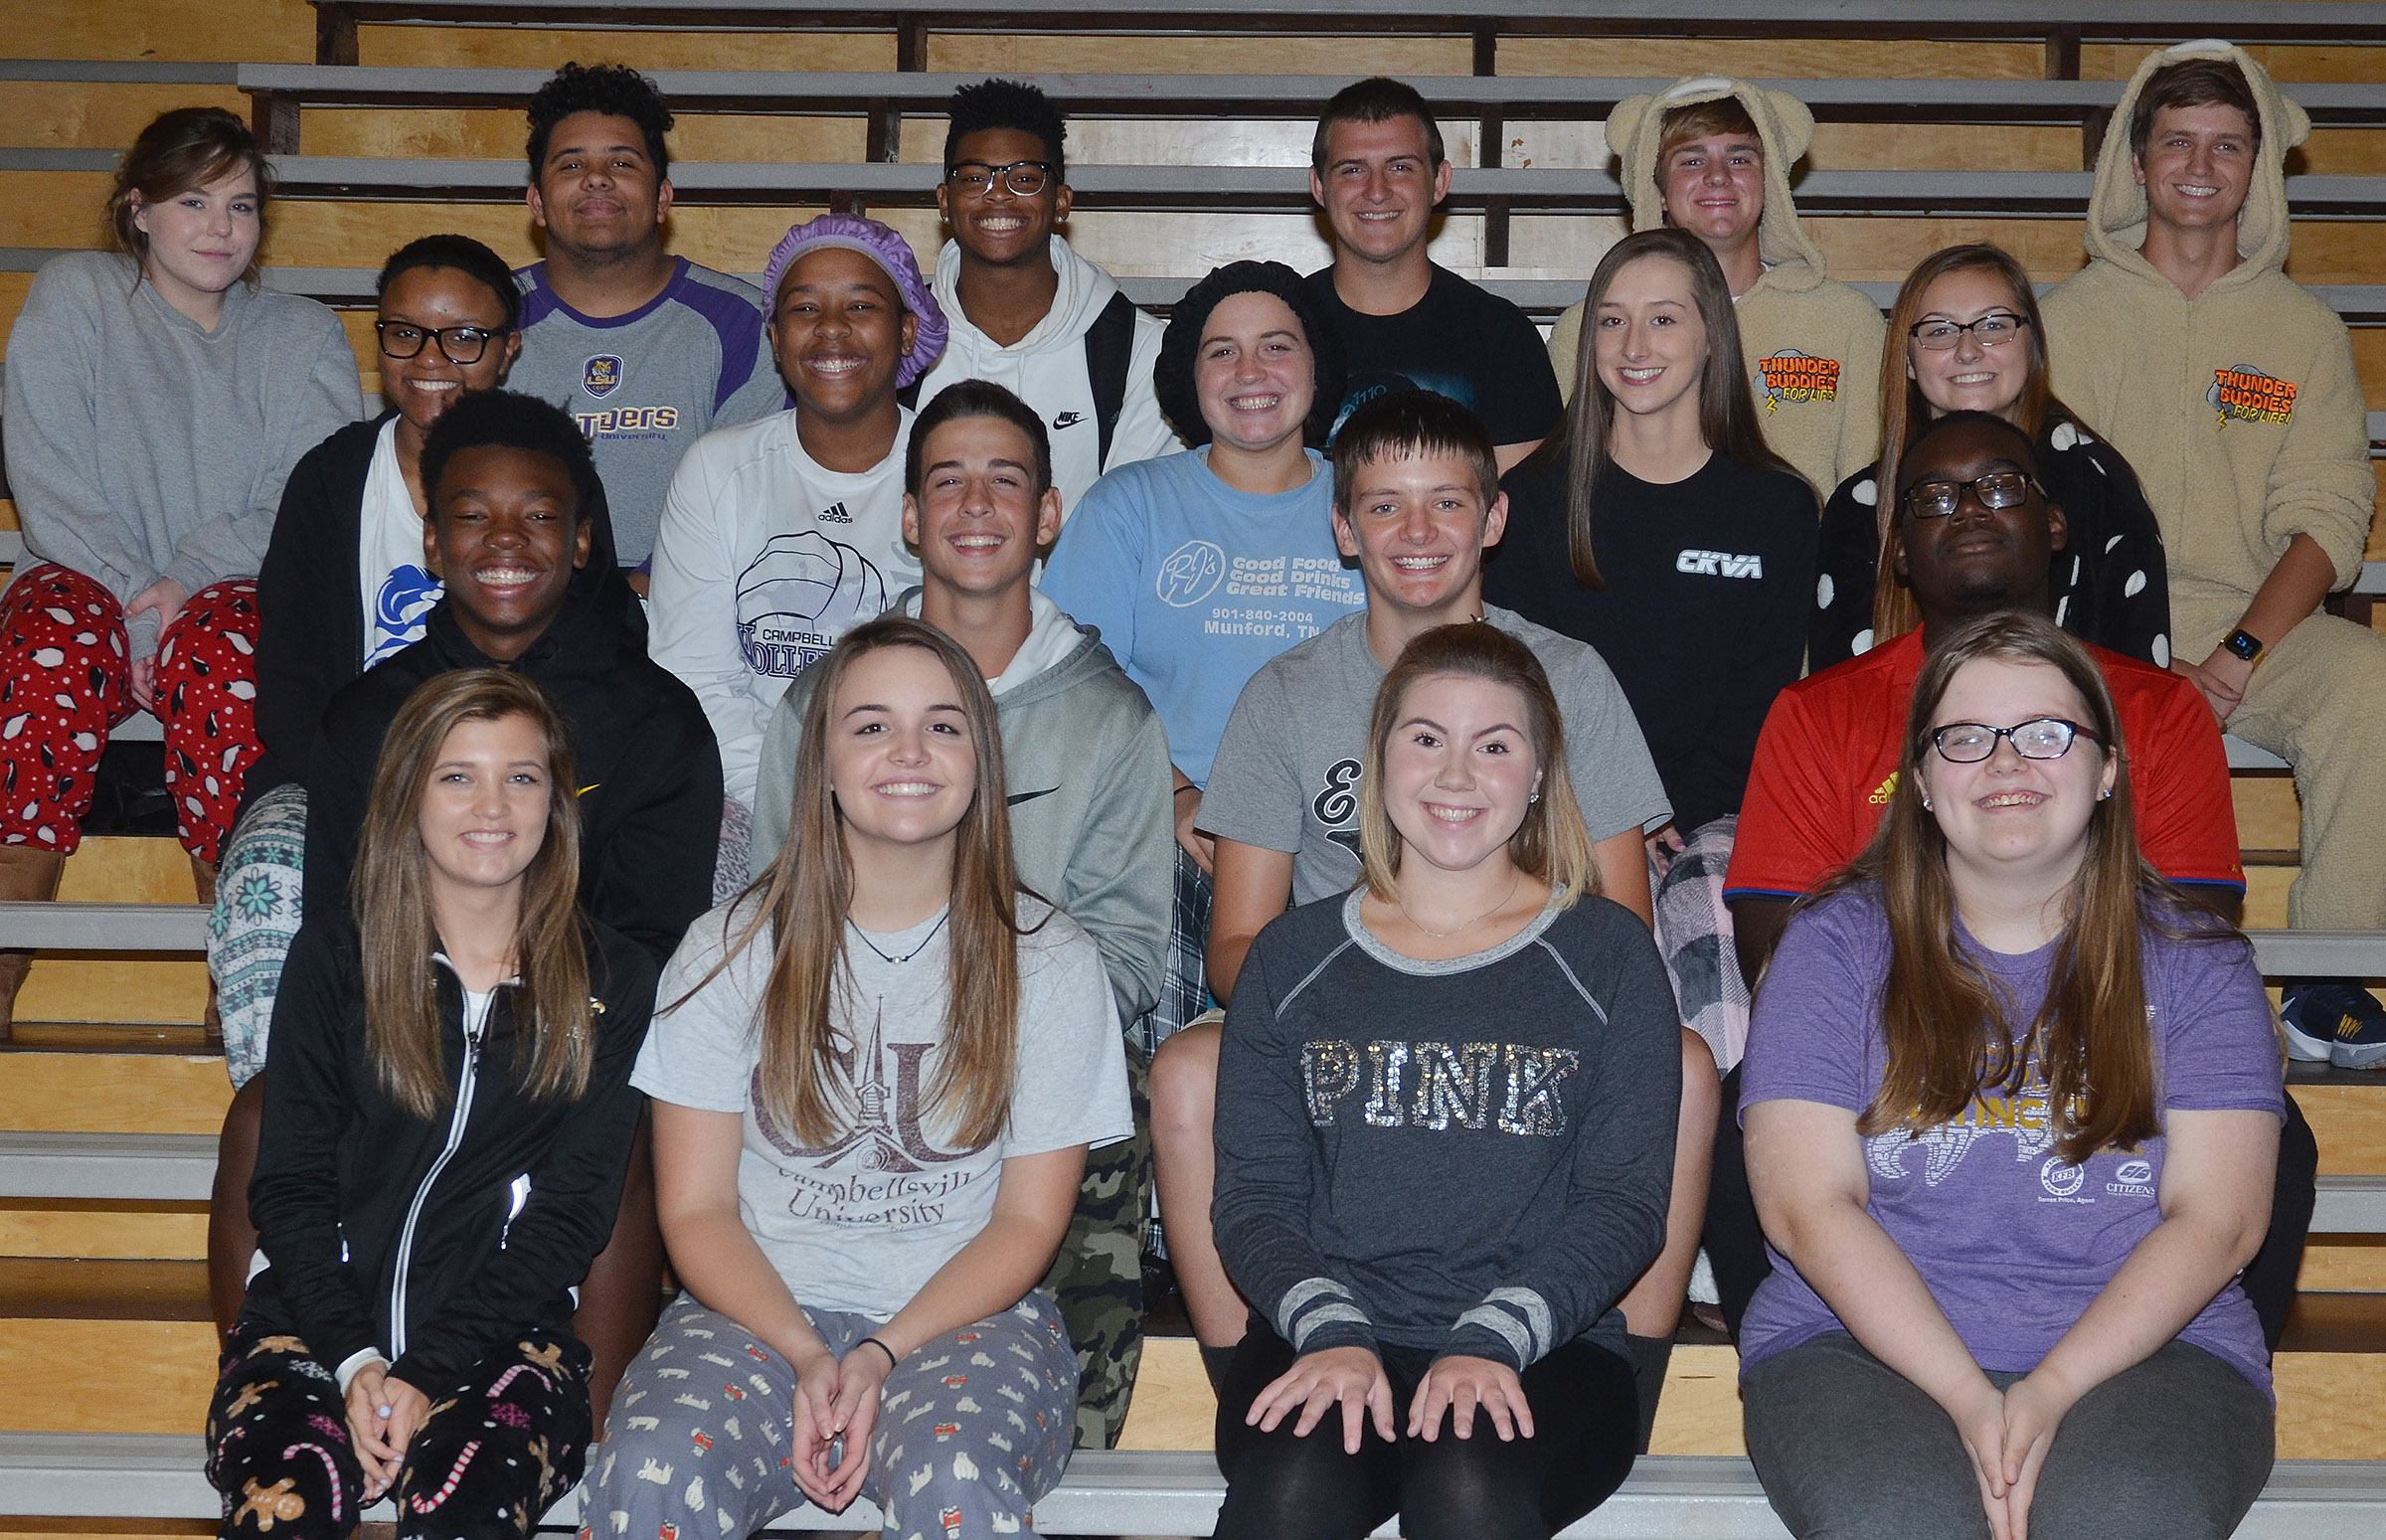 CHS football homecoming king and queen candidates are, from left, front, freshmen Carly Adams and Kenzi Forbis and sophomores Lauryn Agathen and Taylor Brewer. Second row, freshmen Saevon Buckner and John Orberson and sophomores Blake Allen and Taekwon McCoy. Third row, seniors Etiyah Thompson, Kayla Young and Caitlin Bright and juniors Samantha Mason and Reagan Knight. Back, seniors Sara Farmer, Adrian Cravens, Devonte Cubit, Austin Fitzgerald and Alex Doss and junior Myles Murrell. Absent from the photo is junior Charlie Pettigrew.